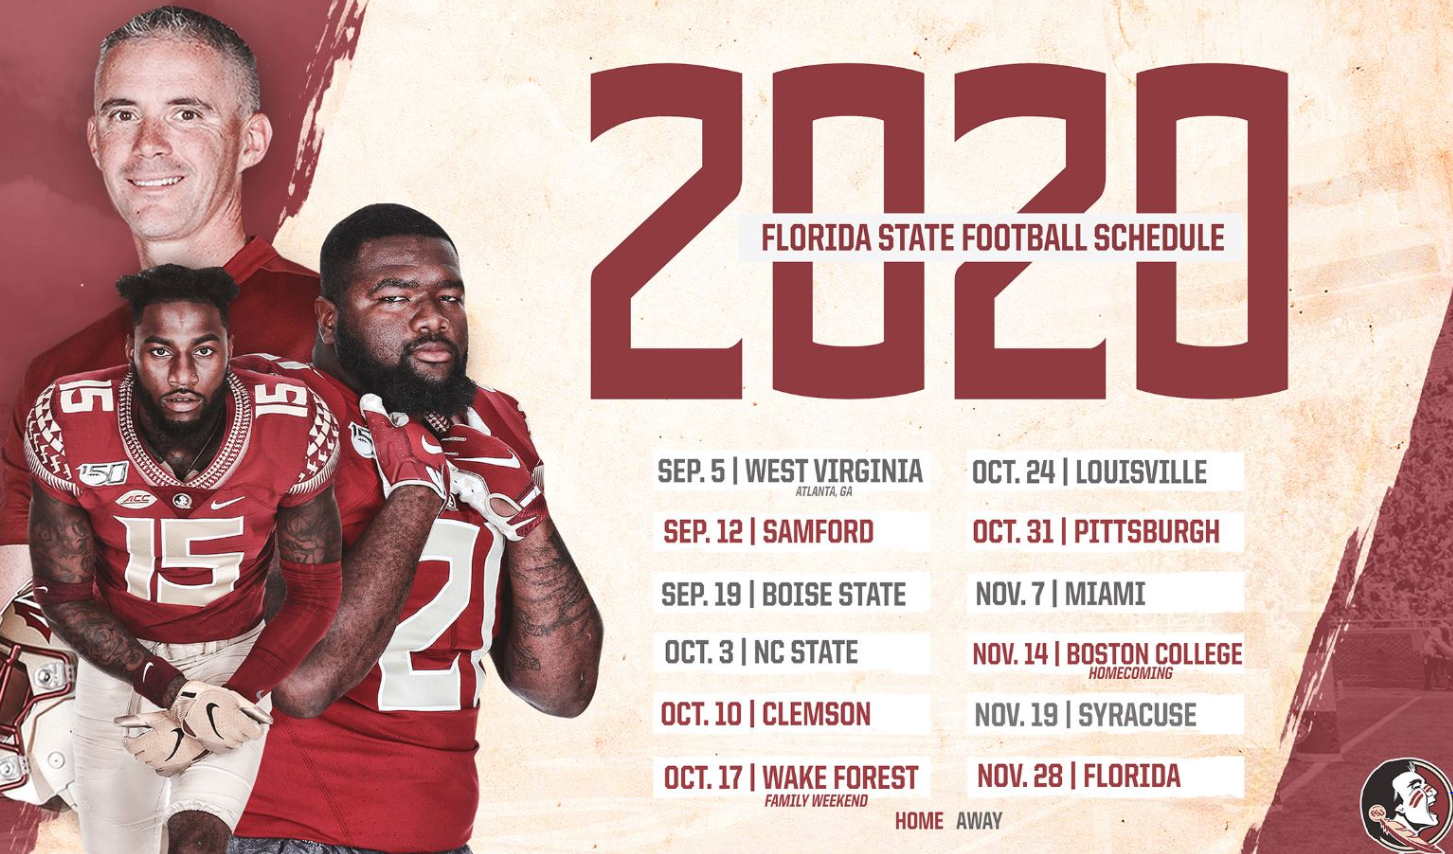 Florida State S 2020 Football Schedule Released